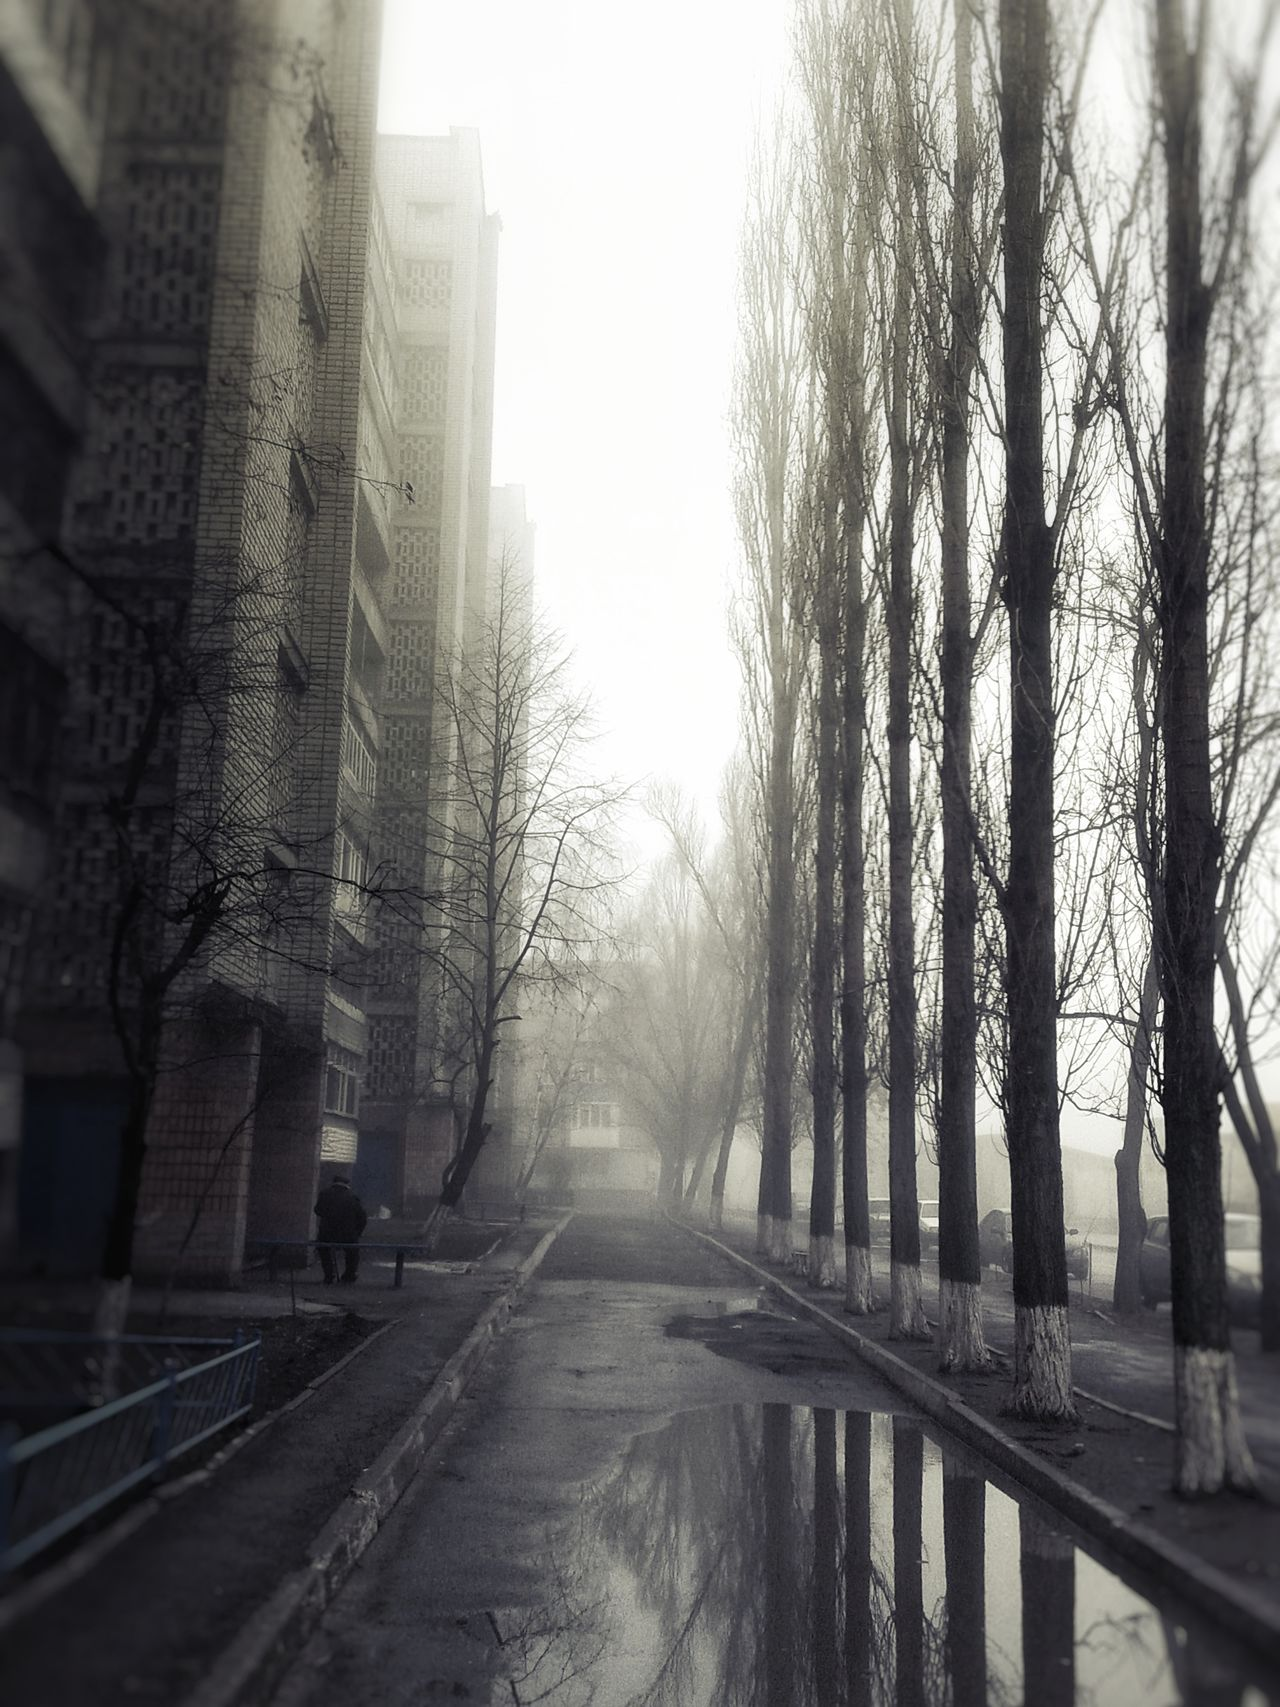 Growth Walking Built Structure Rain Water Rainy Season Cold Temperature Town Foggy Springtime Foggy Morning Tranquility Spring Foggy Weather Reflection Outdoor Photography Branch Bare Tree Outdoors Weather Wet Calm The Way Forward